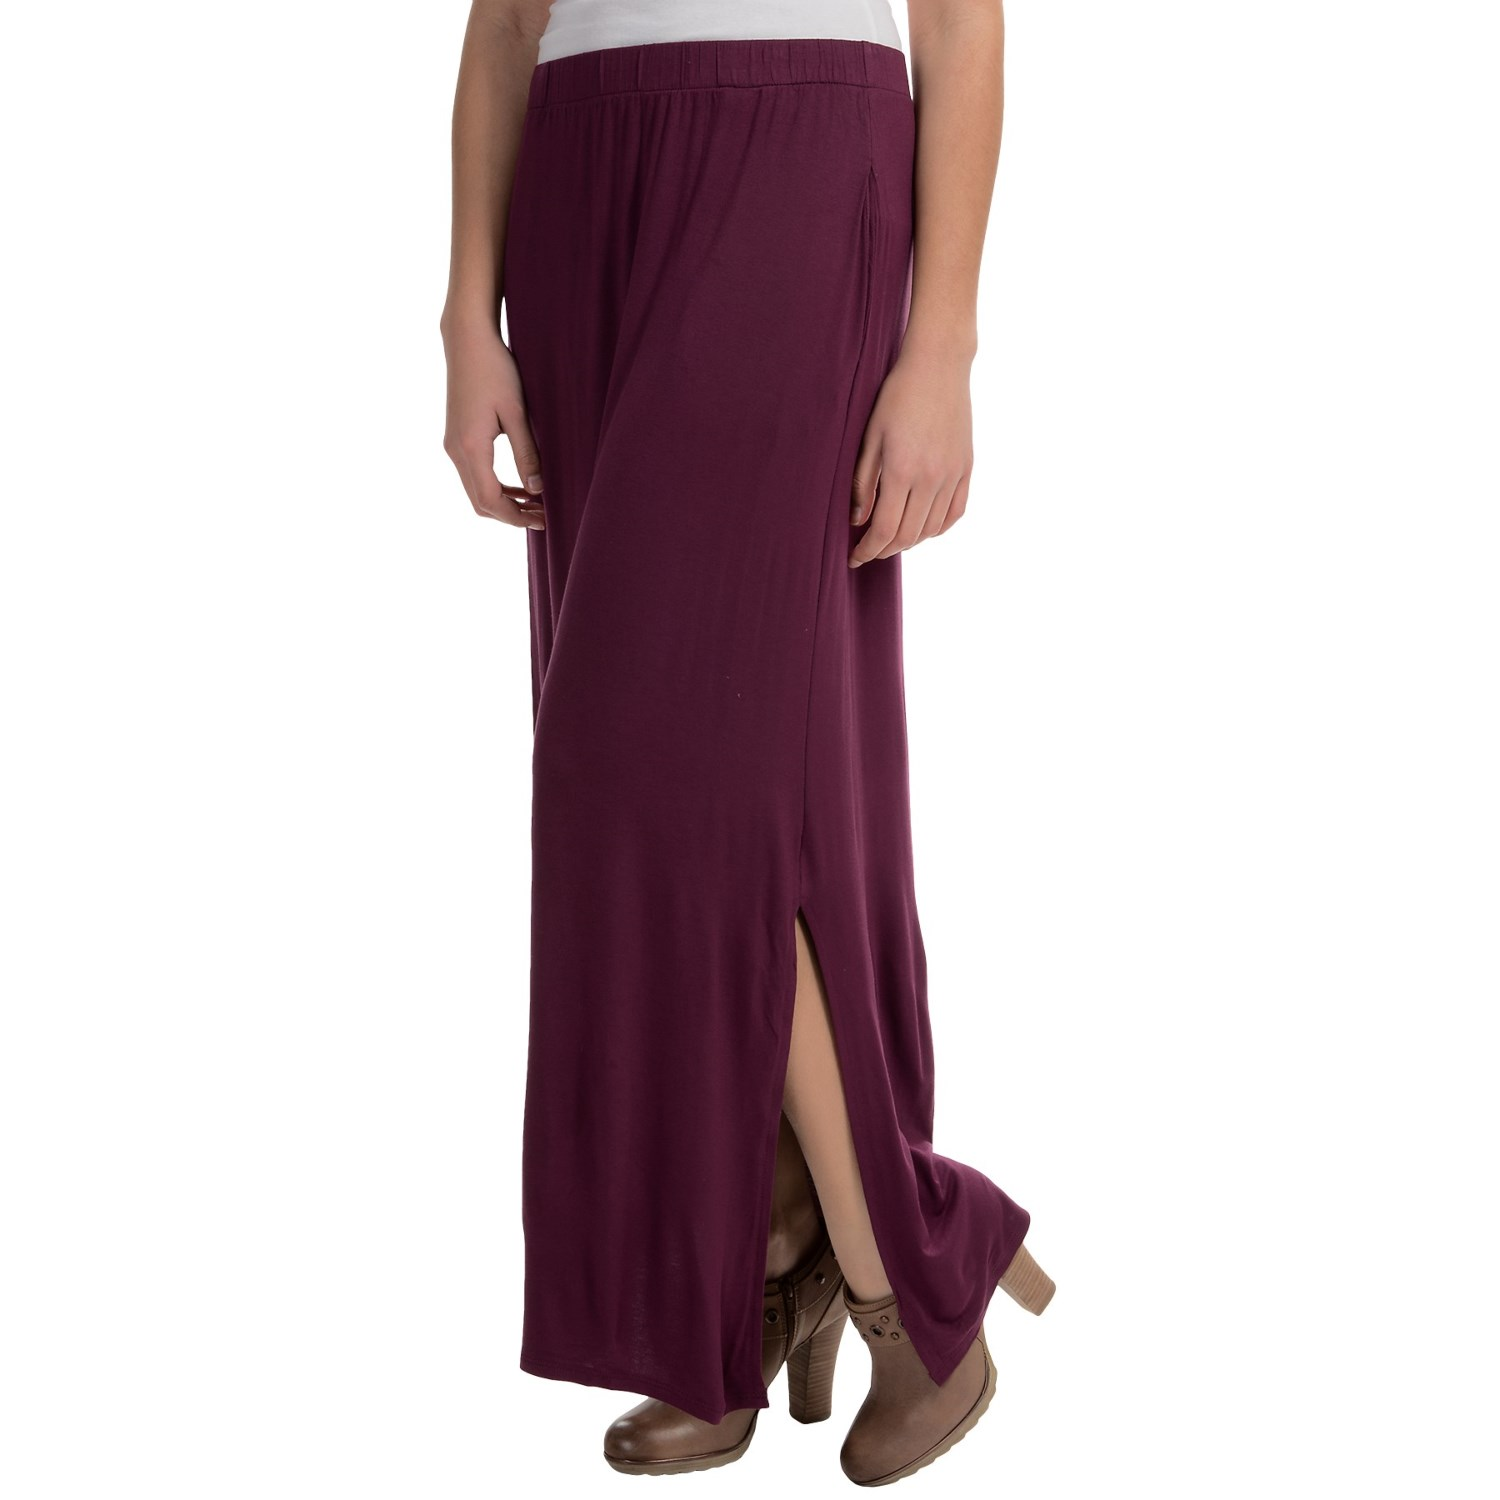 jersey stretch maxi skirt with pockets for save 78